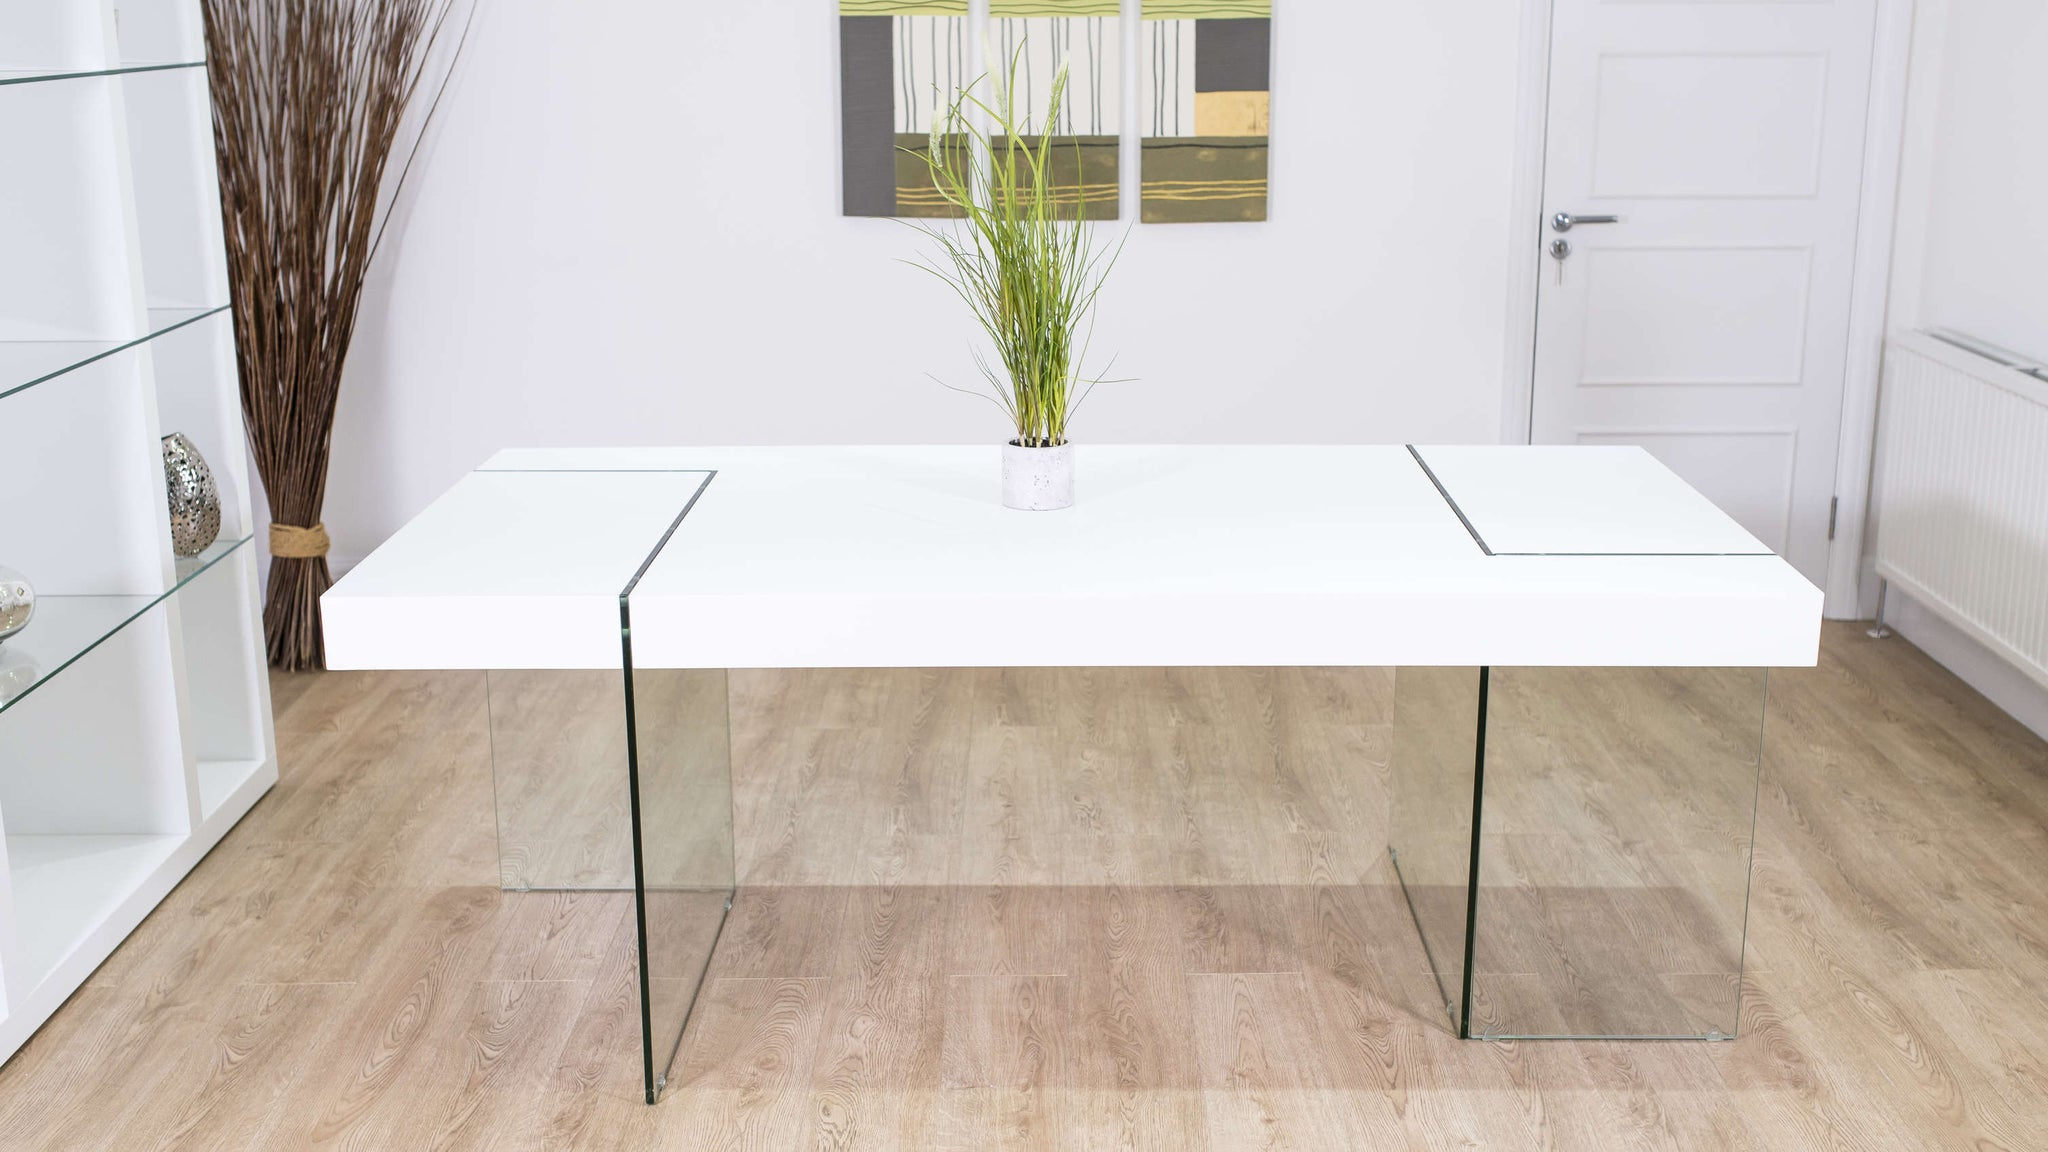 White Wooden Dining Table with Glass legs